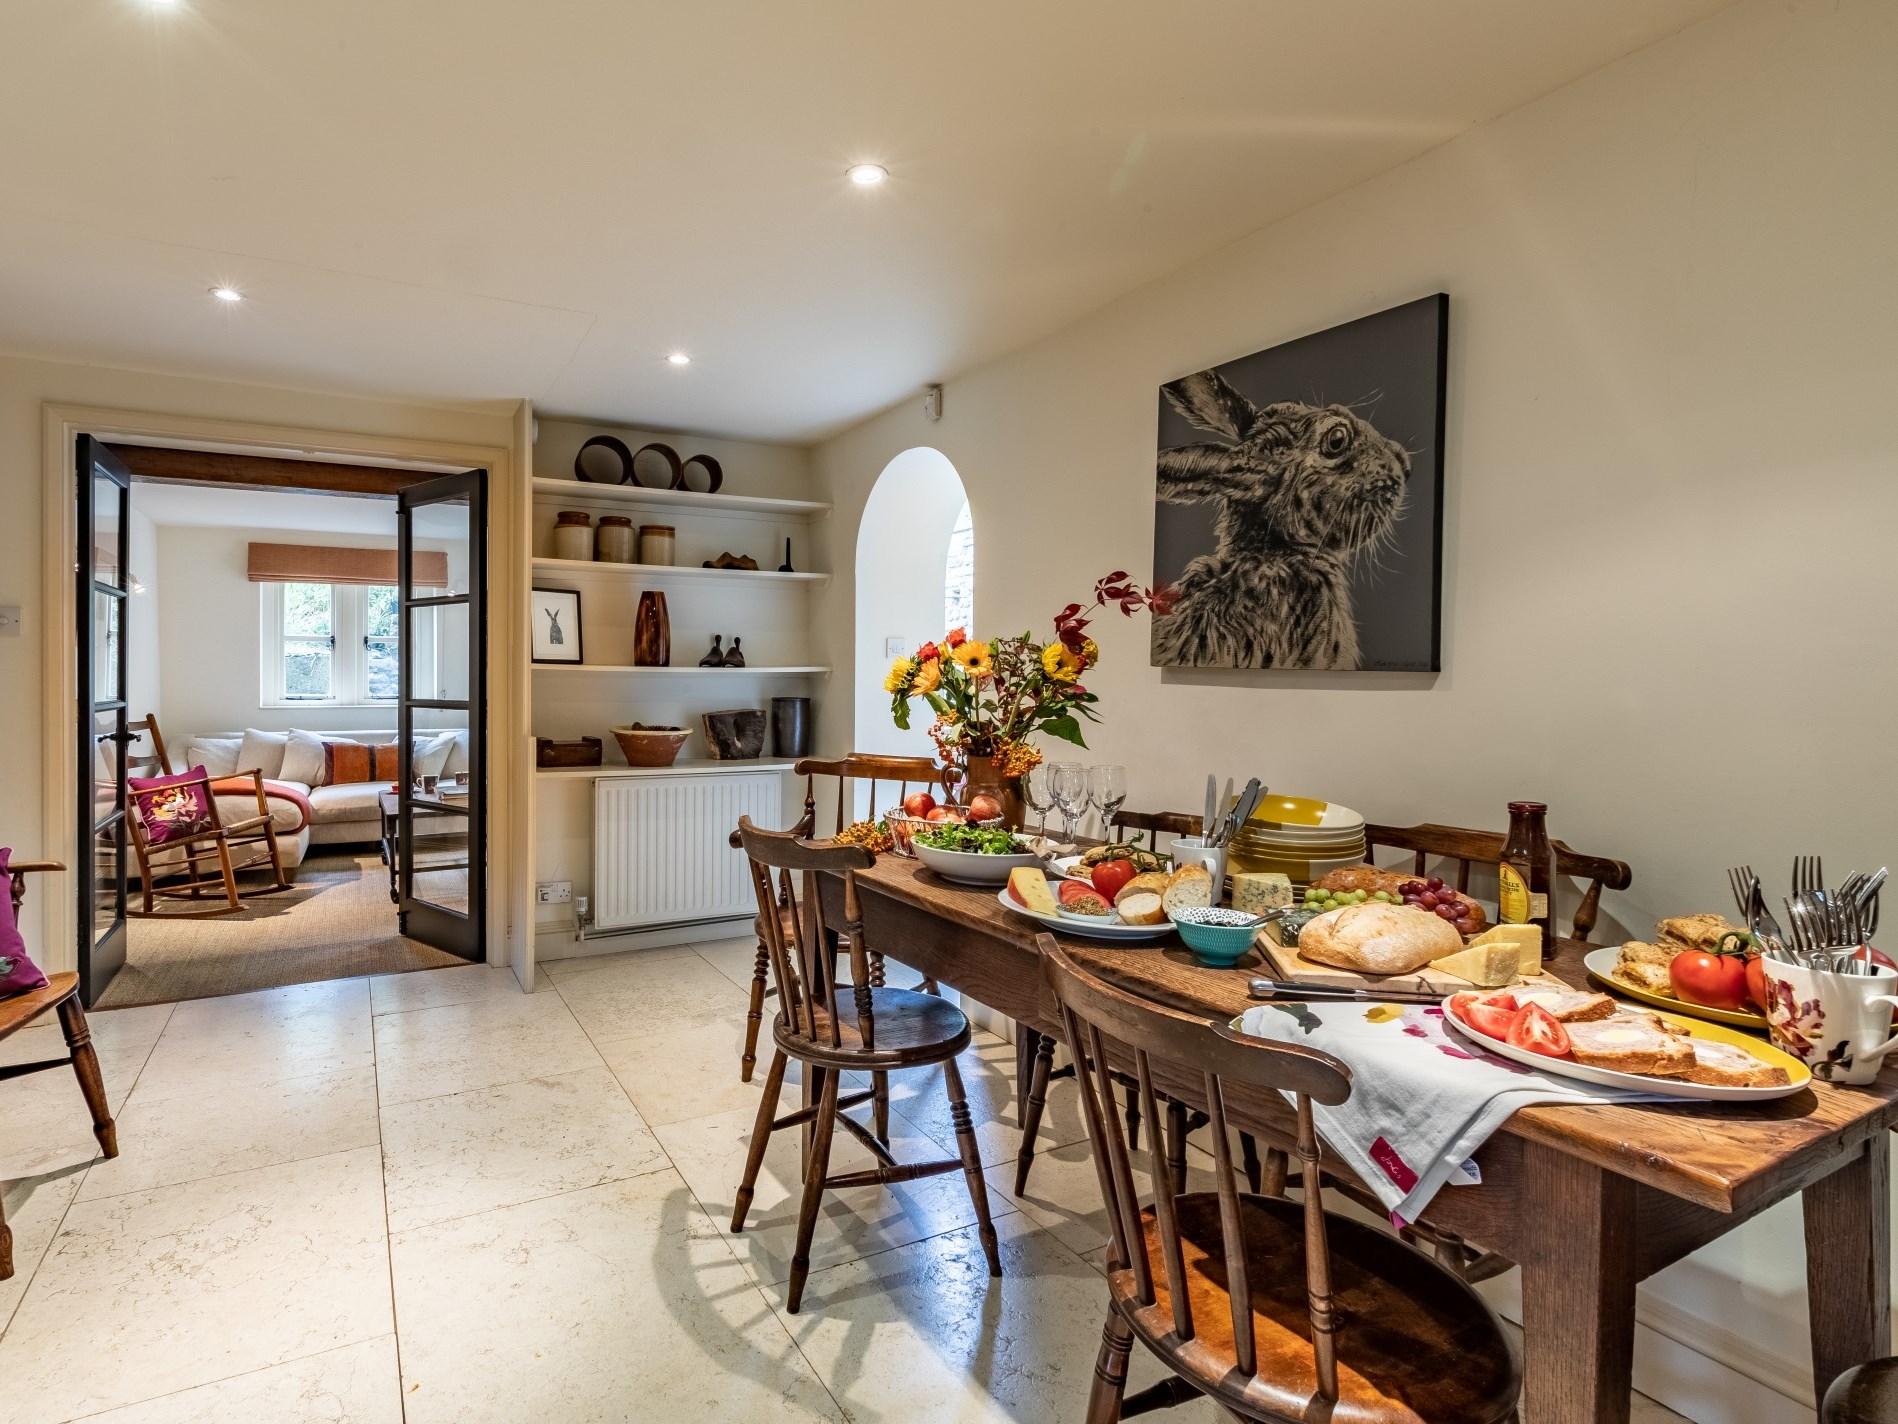 Boasting an antique table and chairs, the dining room is the perfect place to entertain